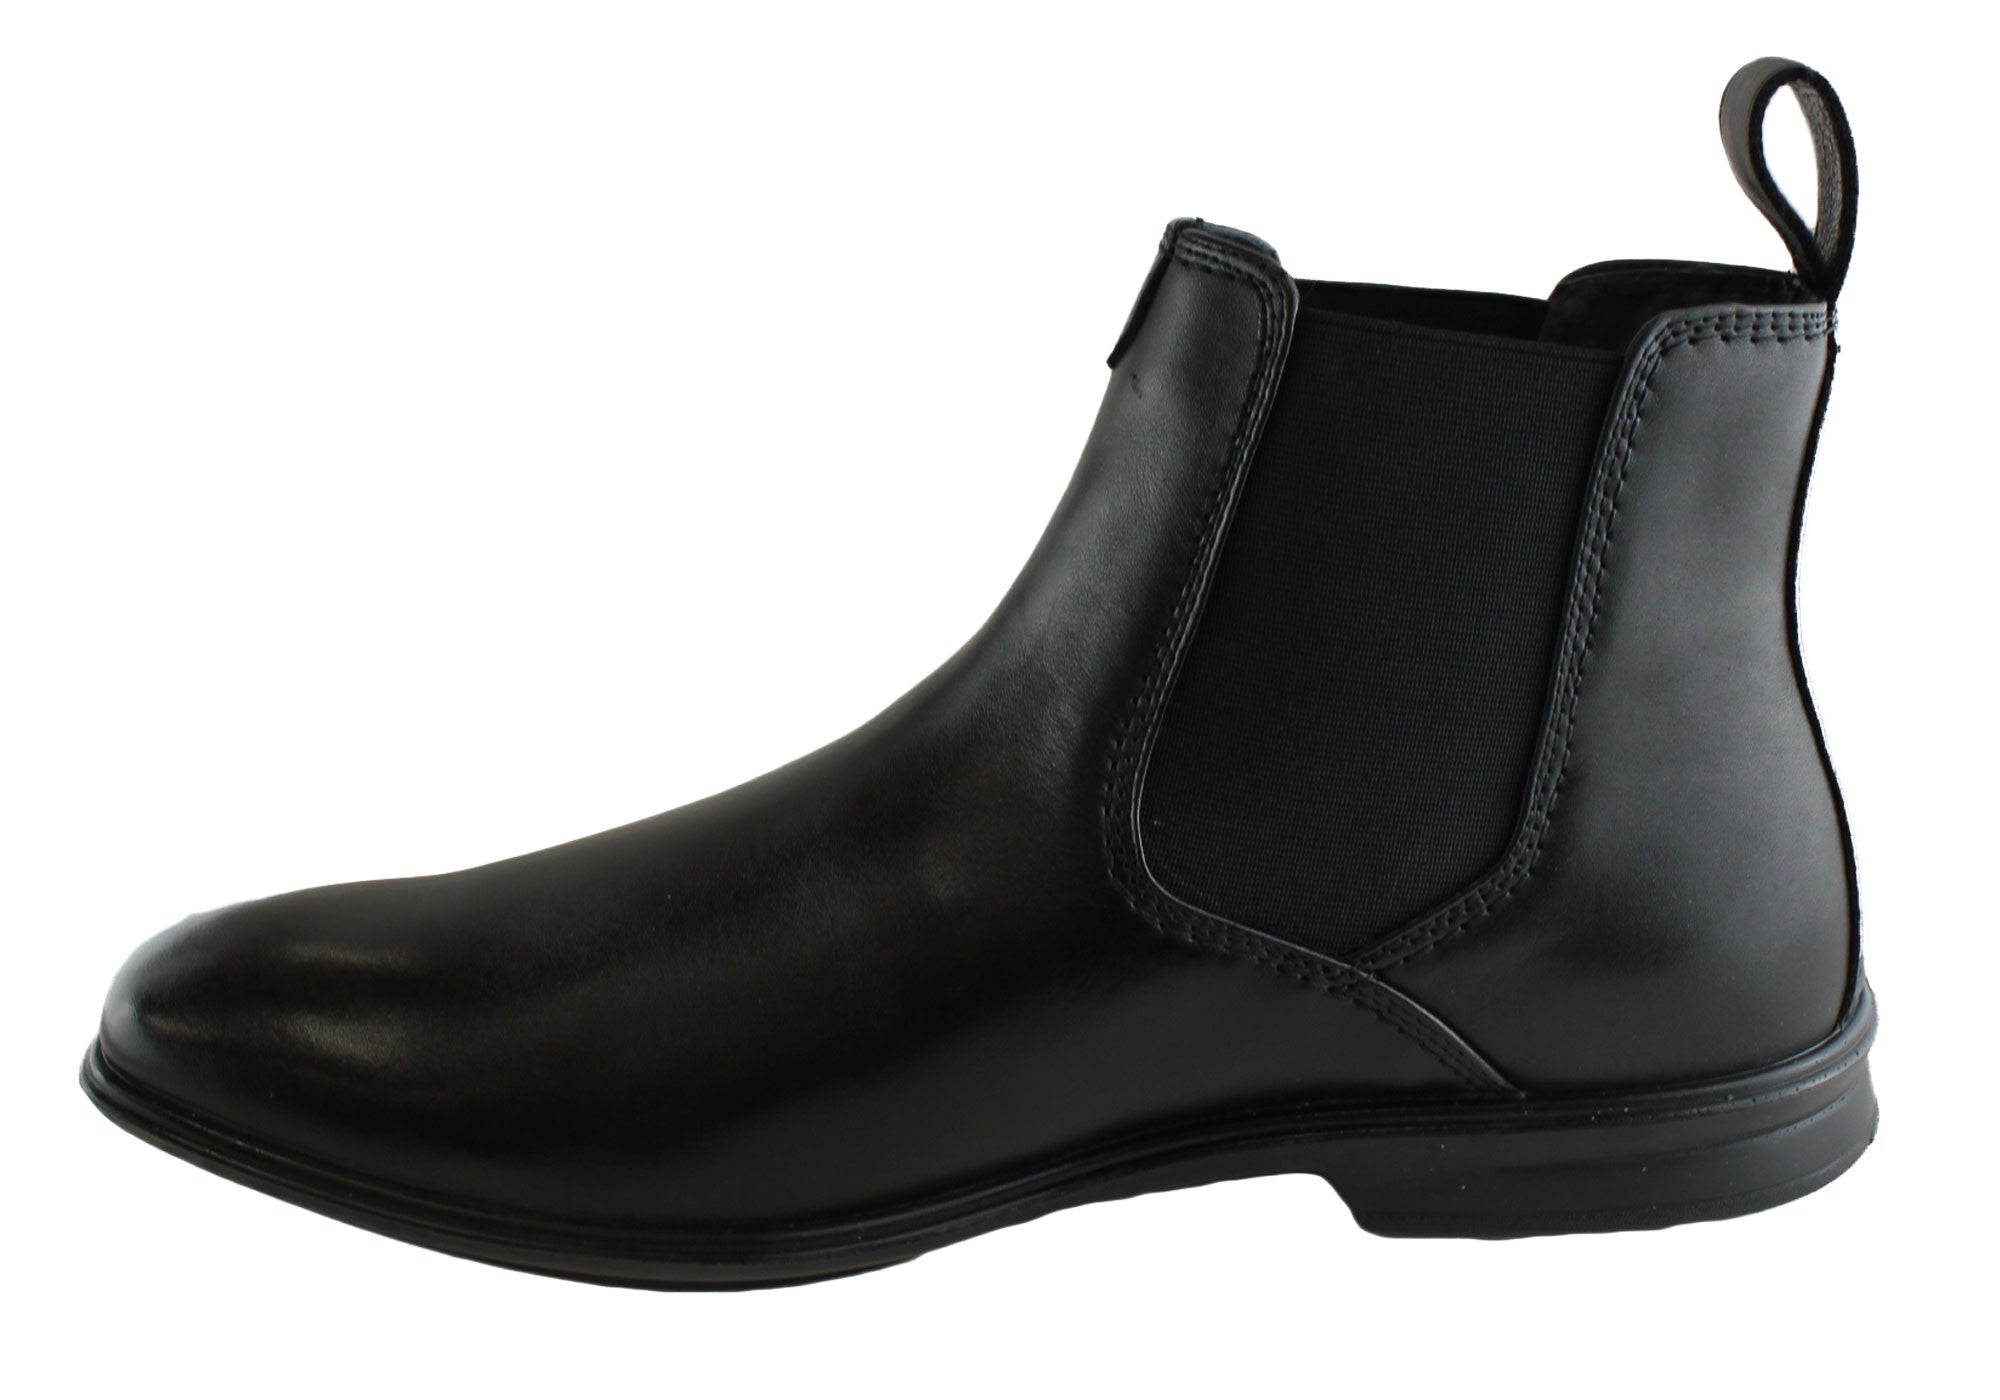 Hush Puppies Chelsea Mens Dress Pull On Boots